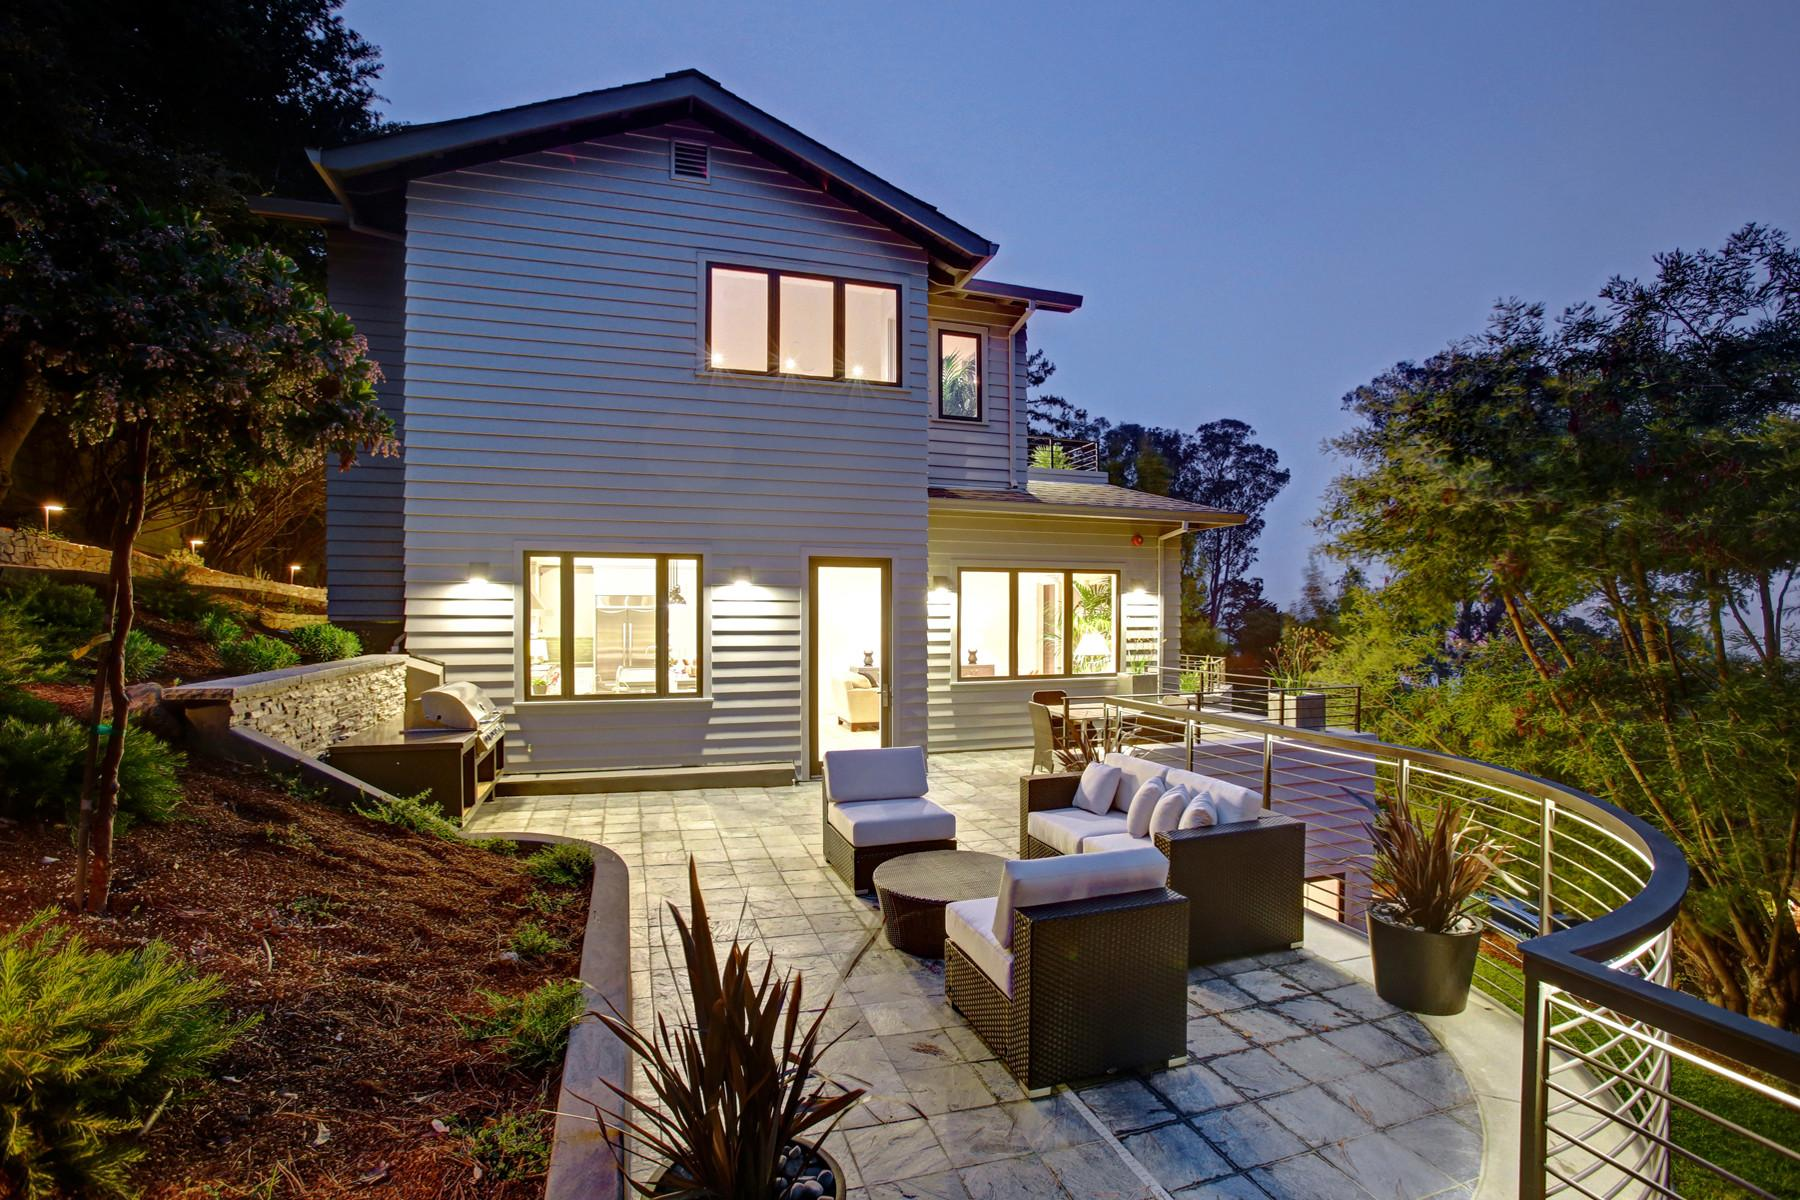 Mill Valley Residence Jyasf Structural Engineers